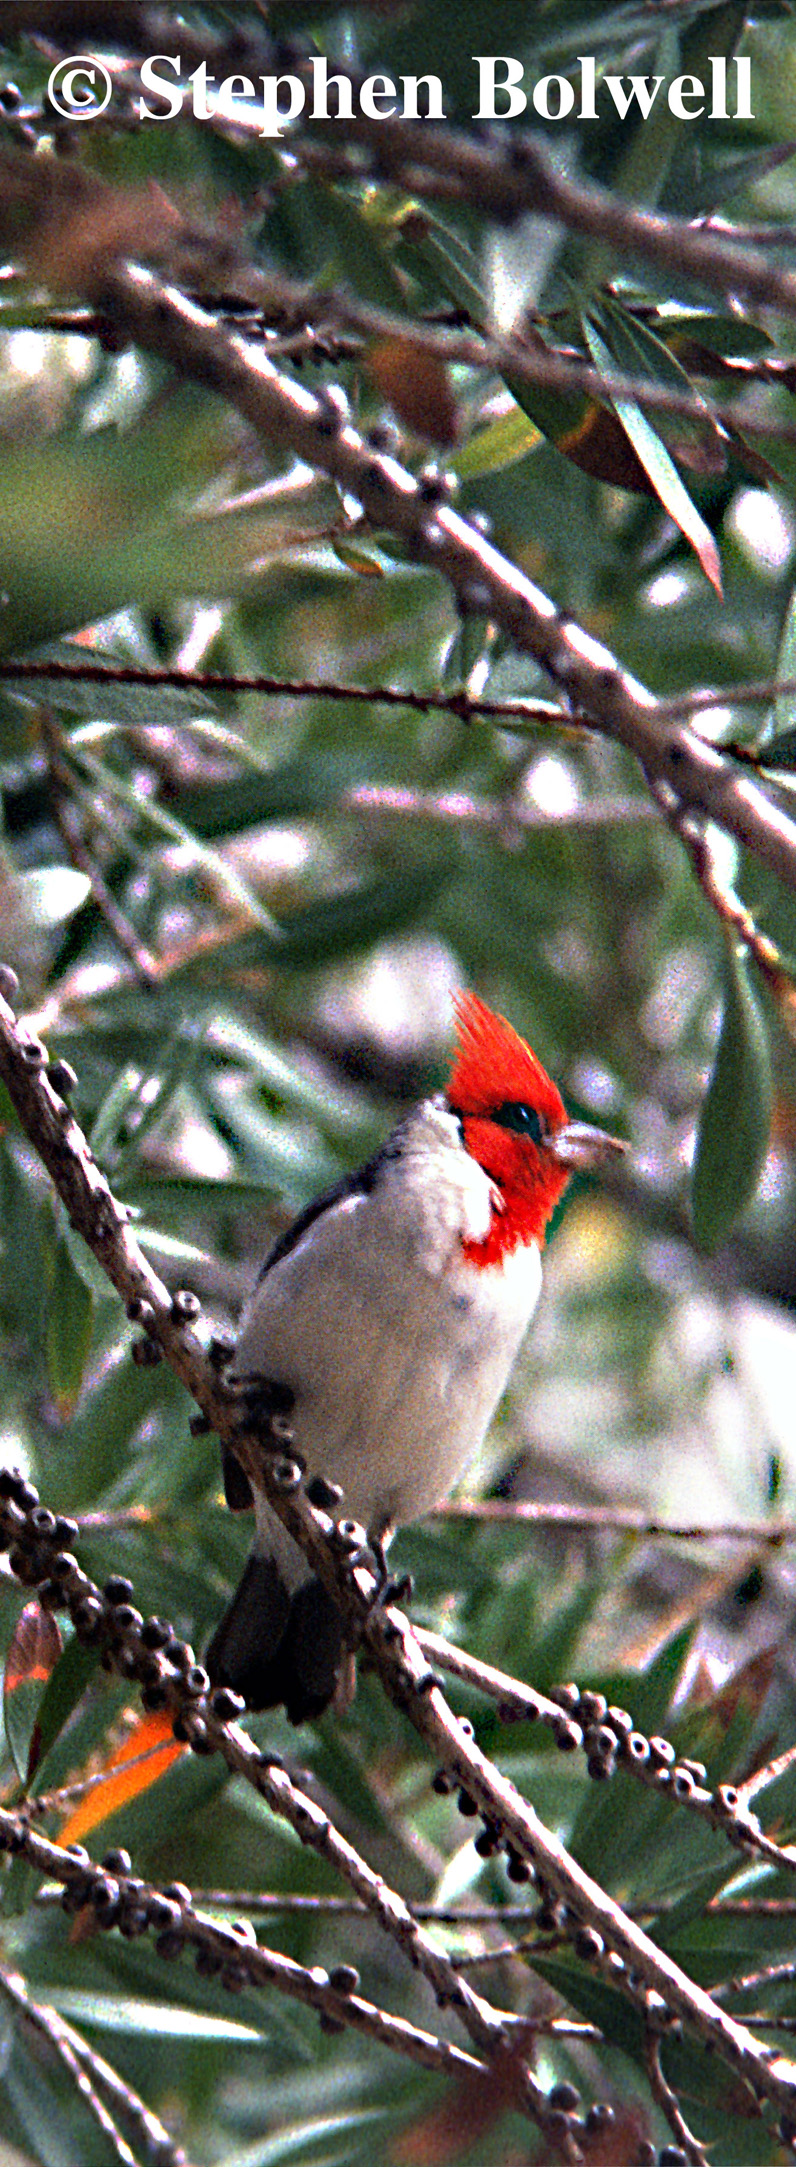 The red-crested cardinal is beautiful, but it is not a native bird.